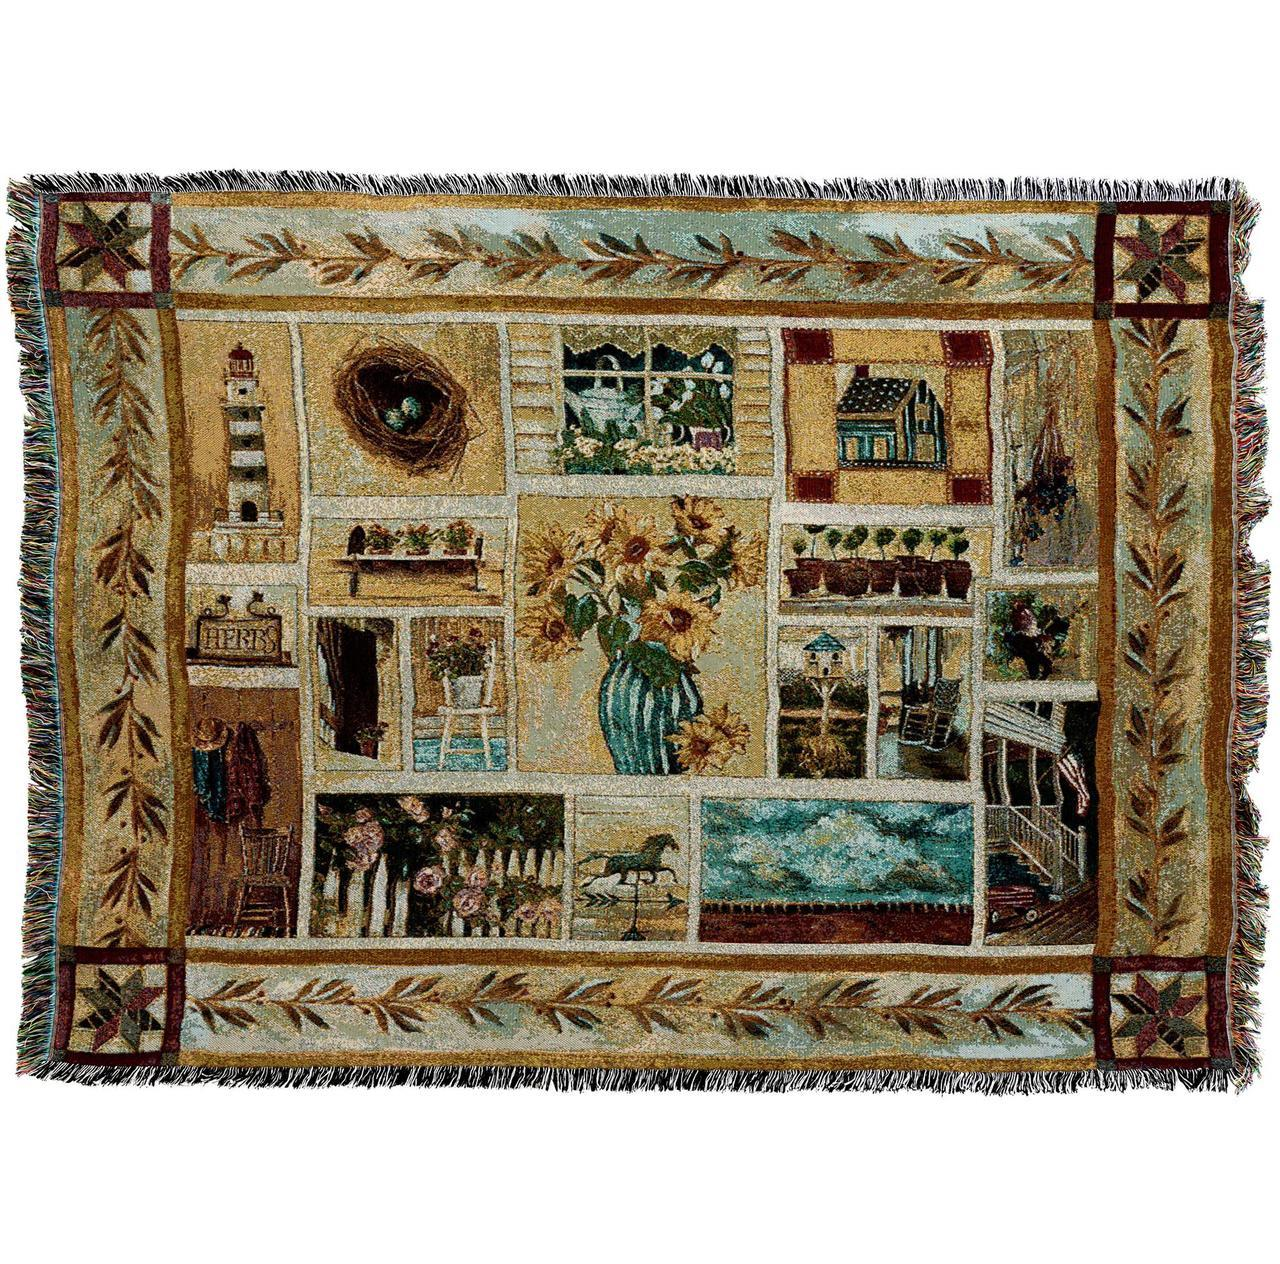 American Country Woven Throw Blanket